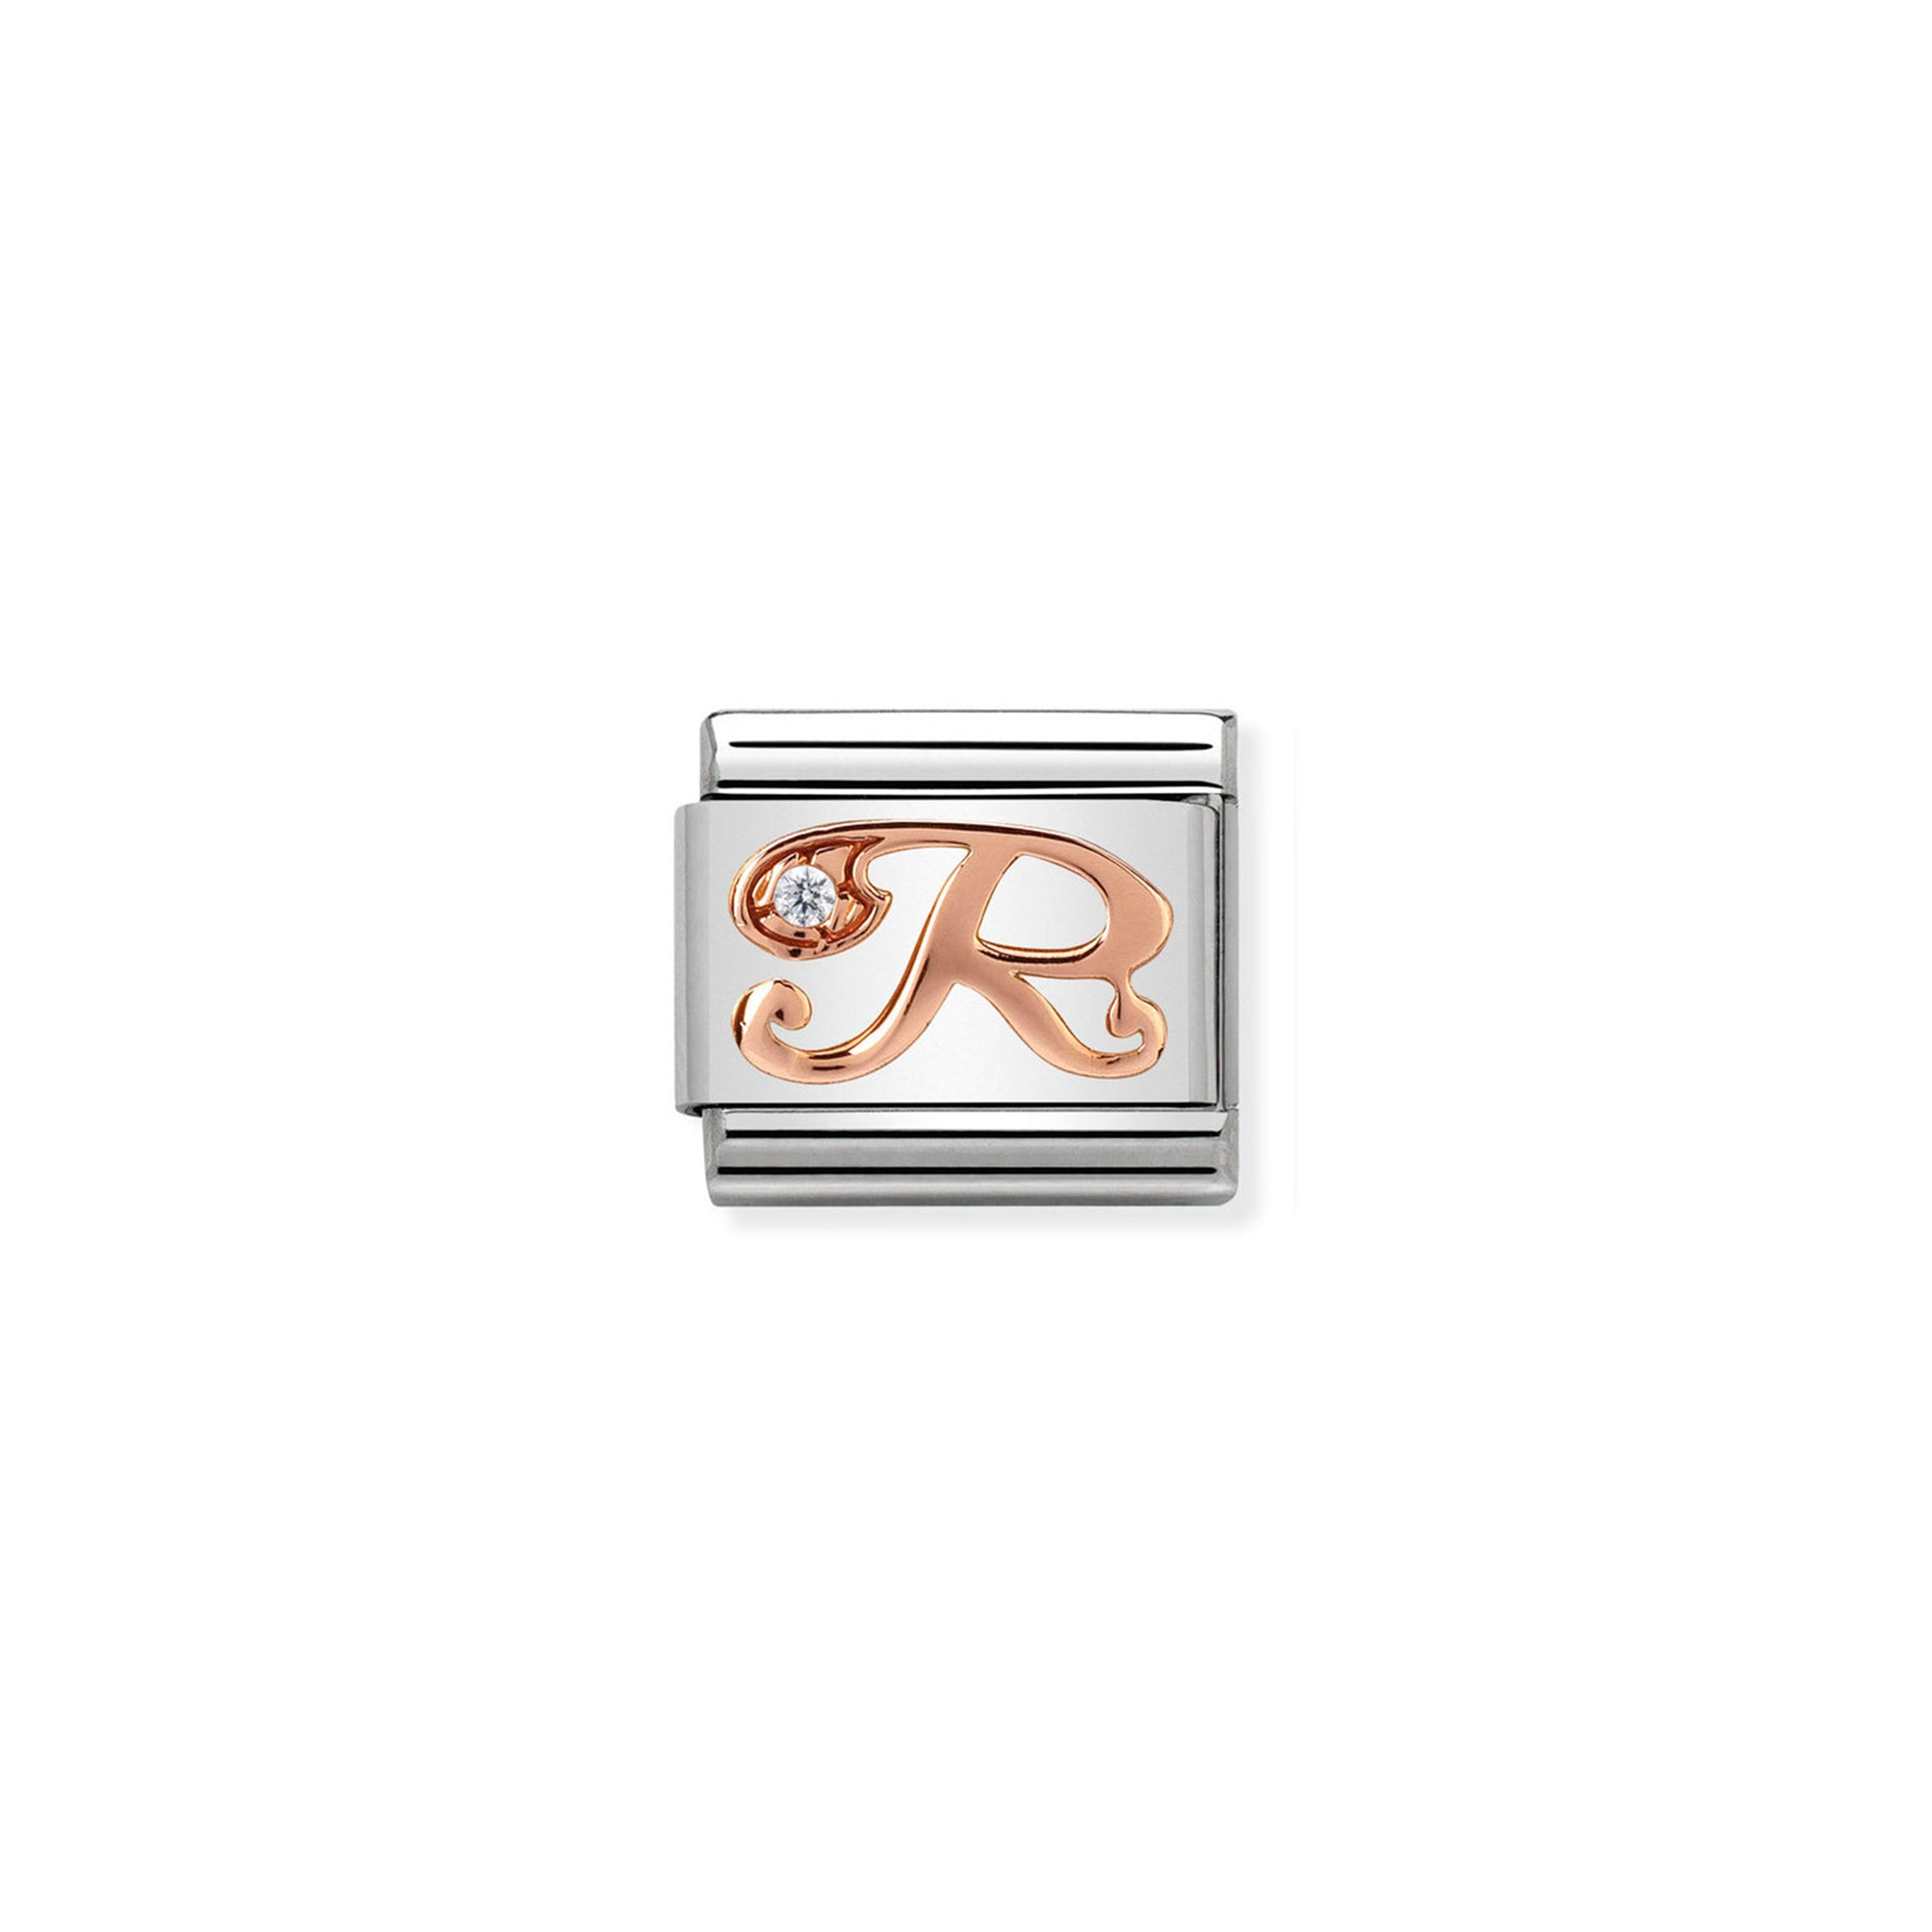 NOMINATION - Composable 430310 18 Classic LETTERS st/steel, CZ, 9ct rose gold (Letter R)